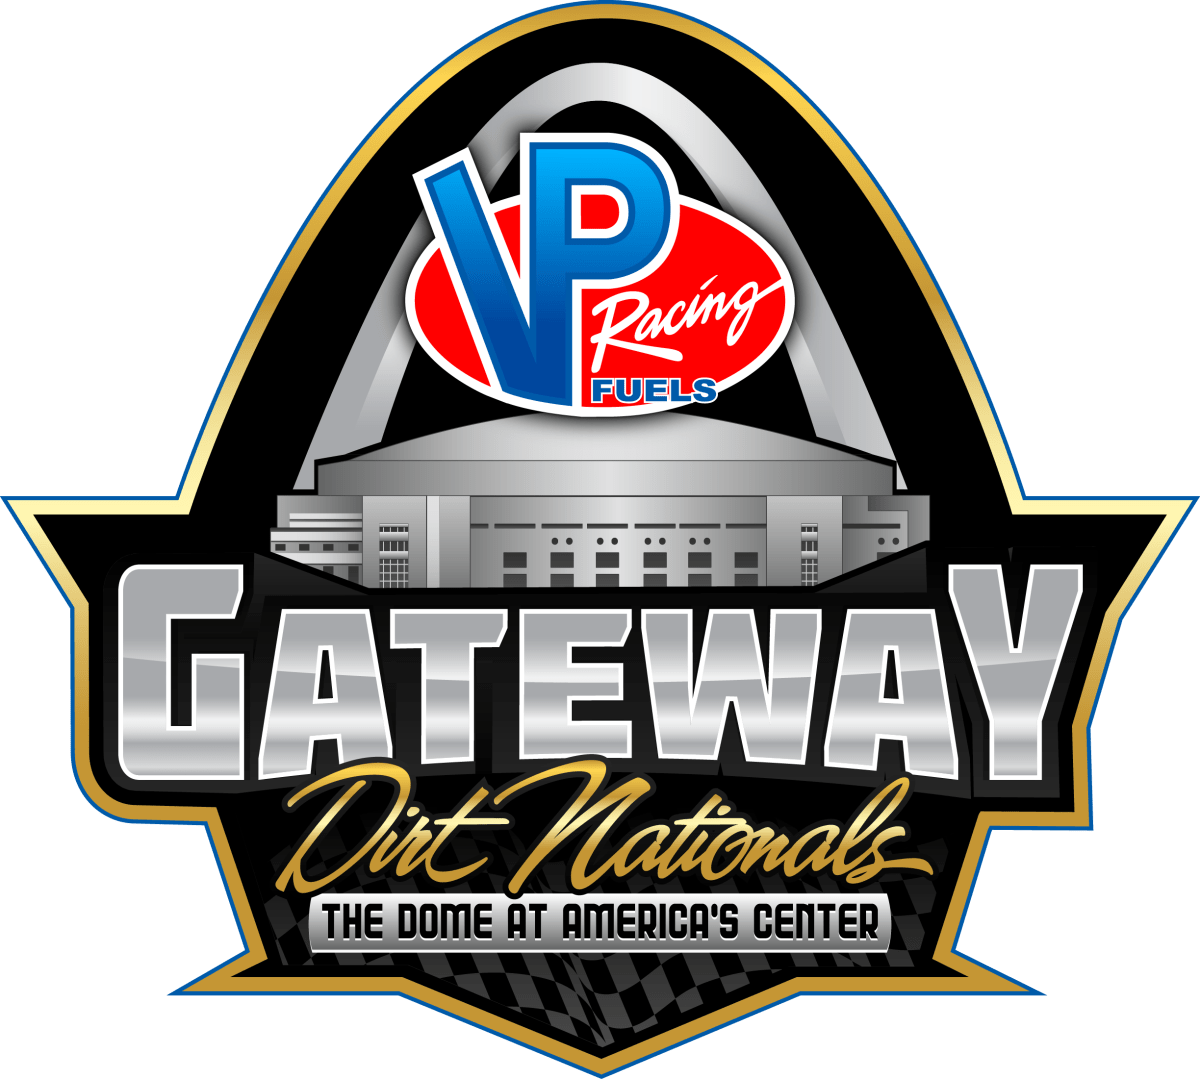 Gateway Dirt Nationals promoter Cody Sommer injured in accident at Ohio track!